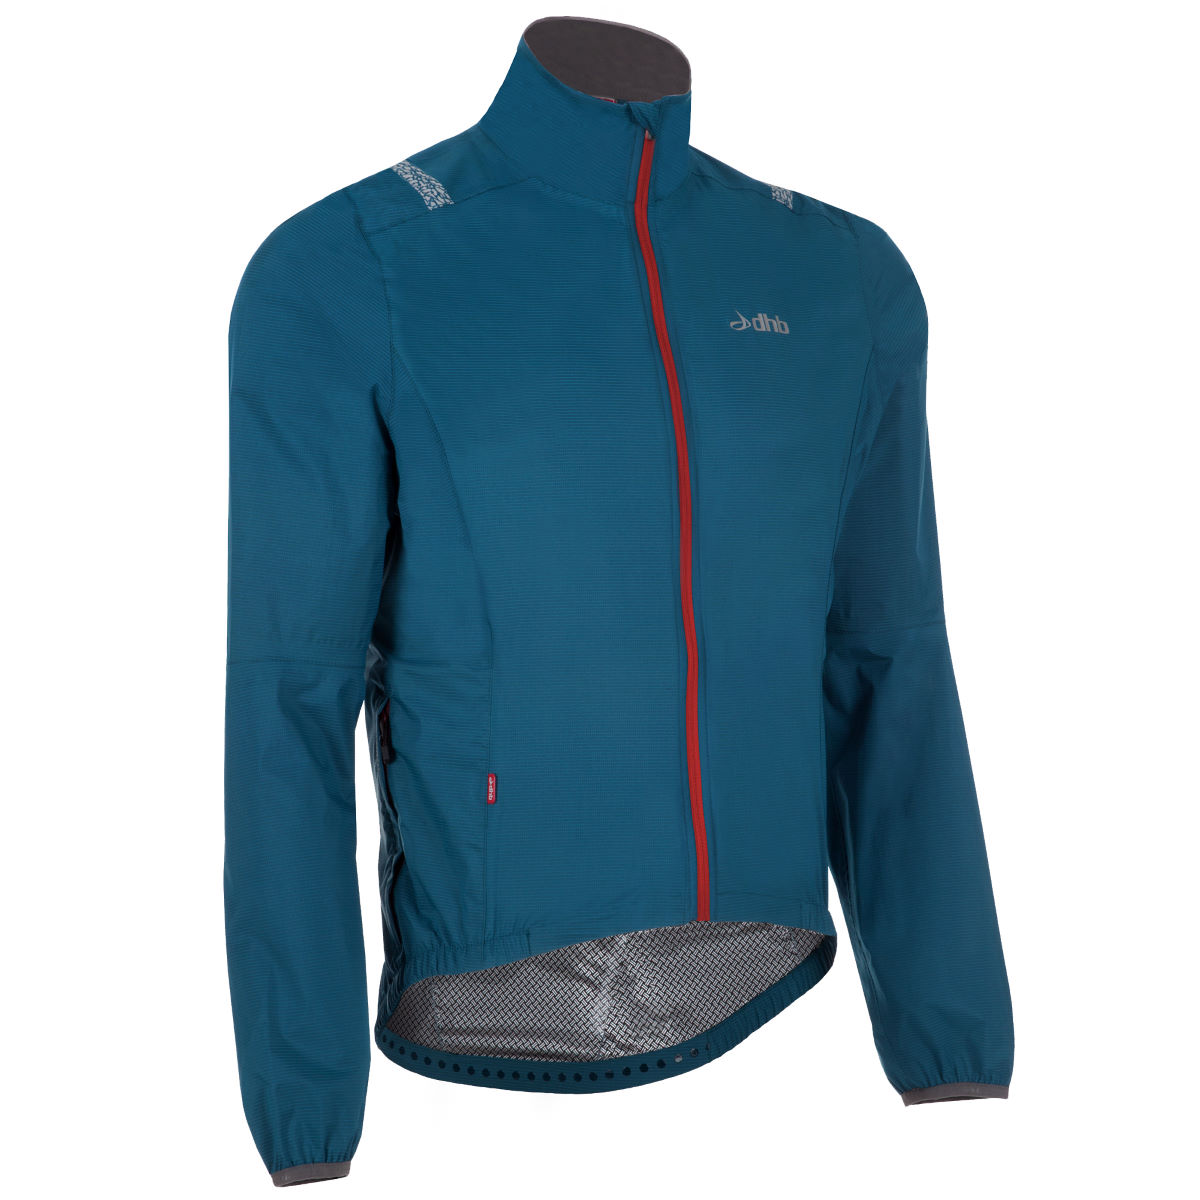 dhb Cosmo Waterproof Jacket 2015